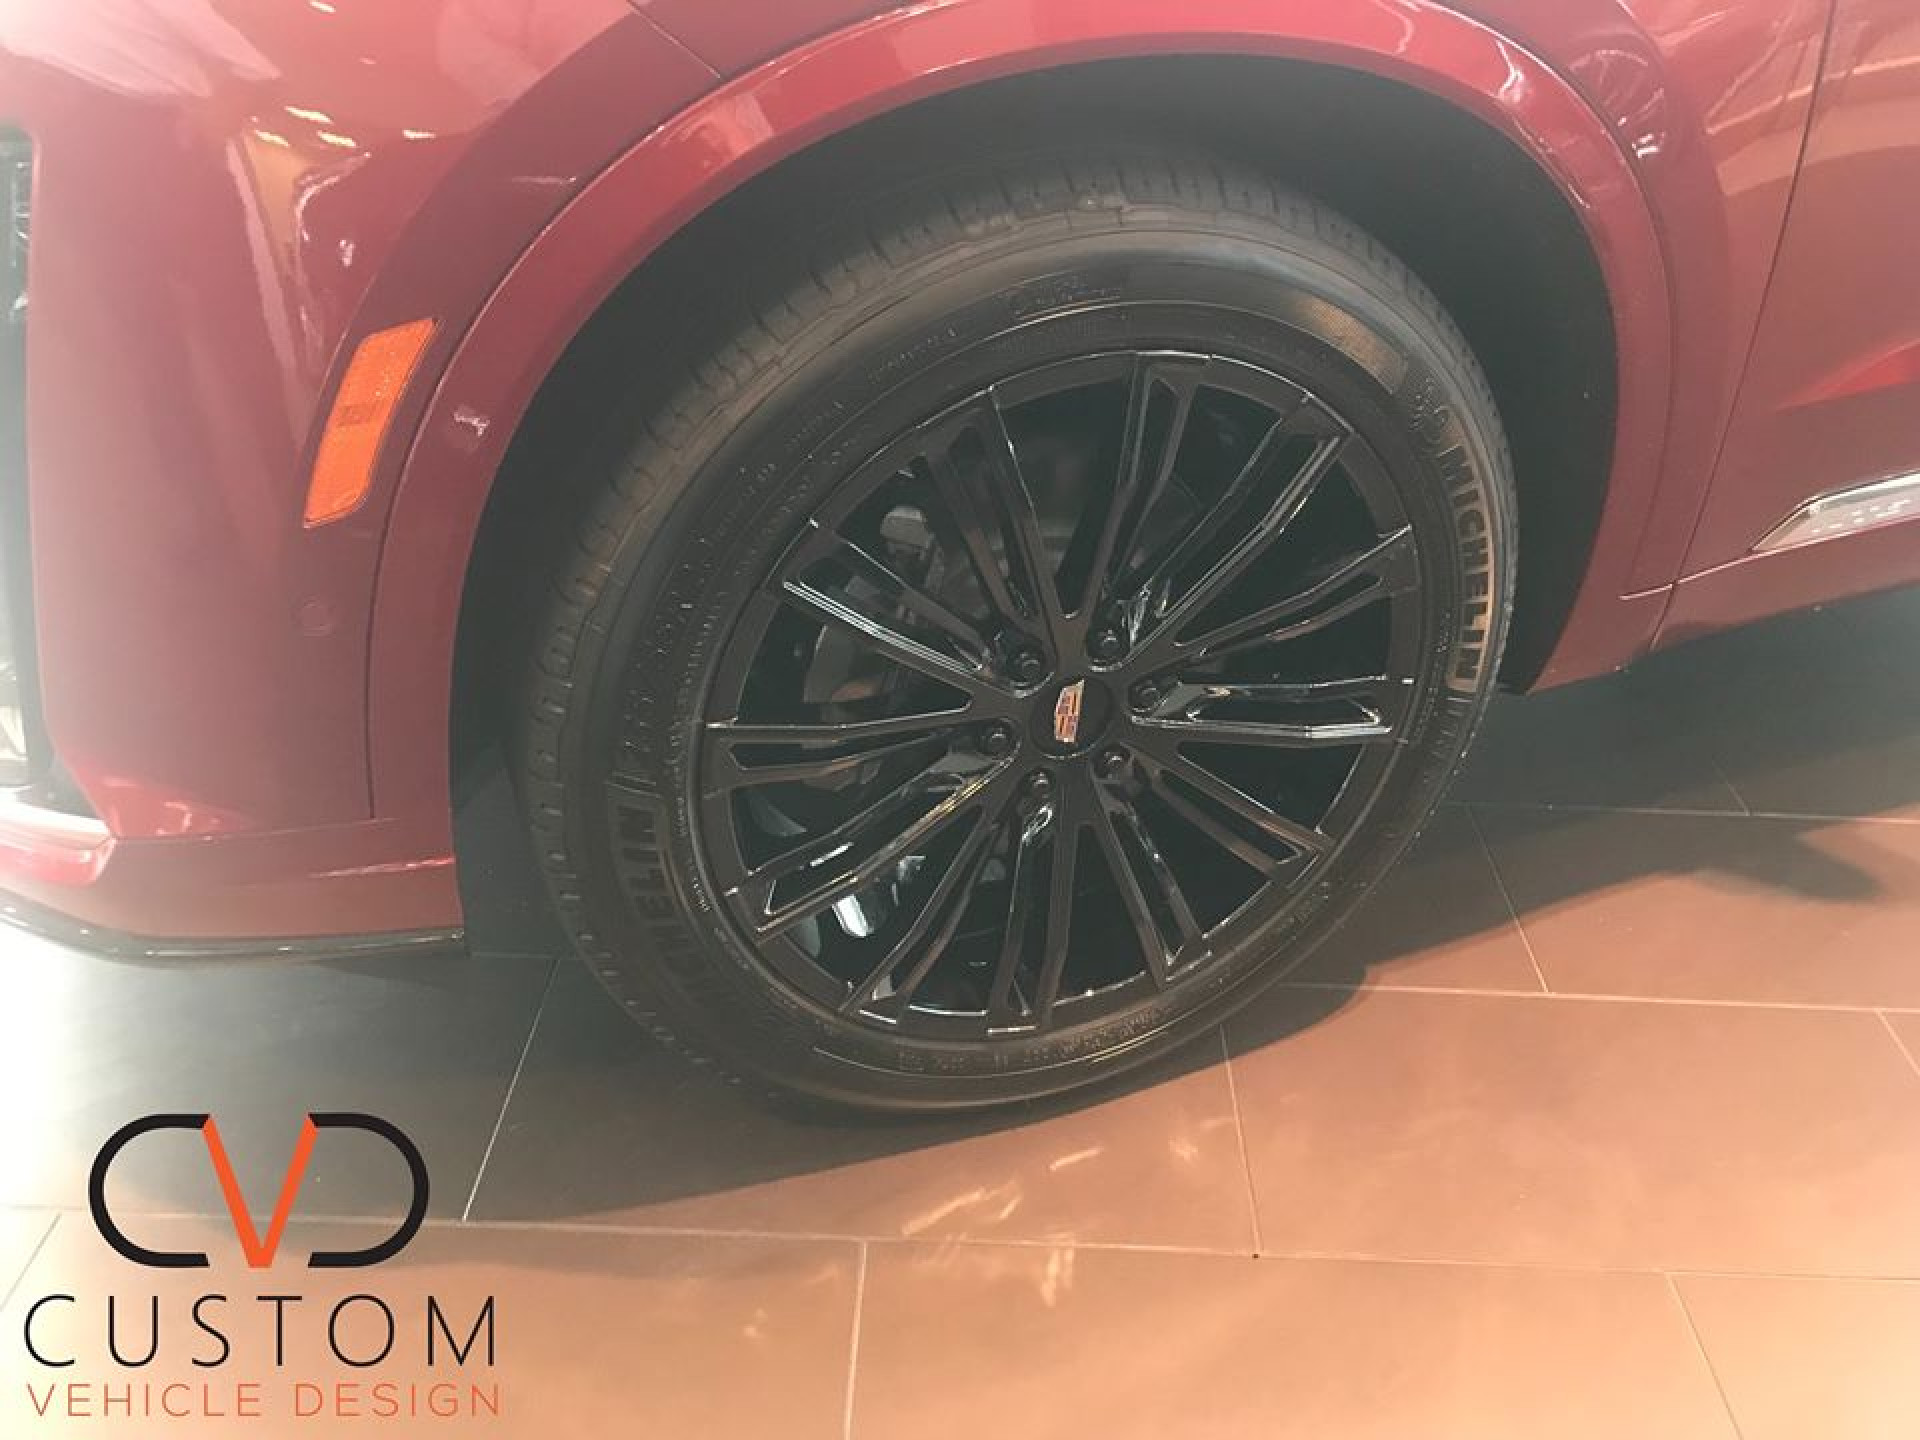 Black Vogue VT386 wheels on a Cadillac XT6